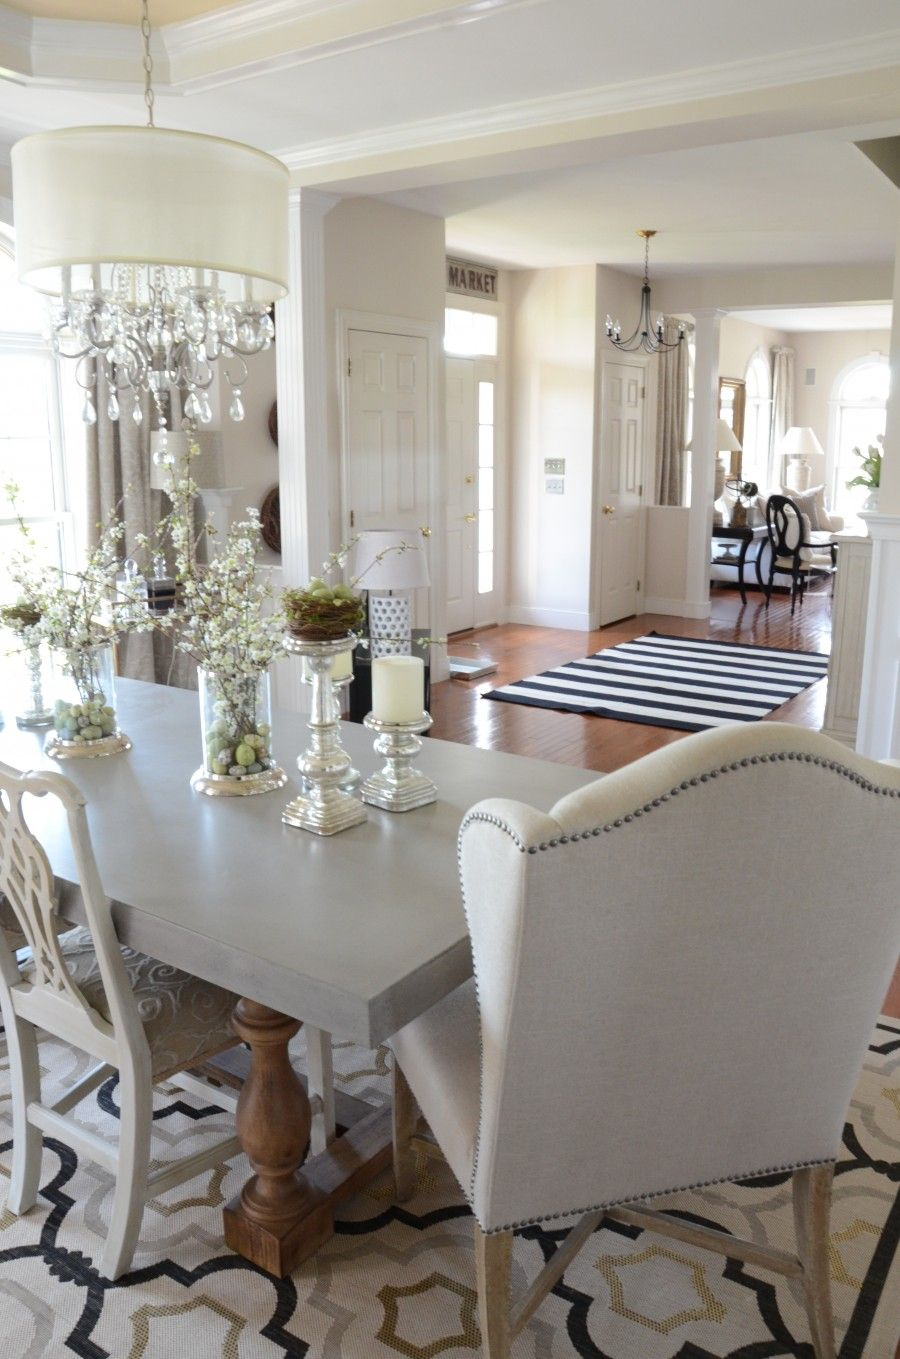 SPRING HOME TOUR 2016 HOSTED BY COUNTRY